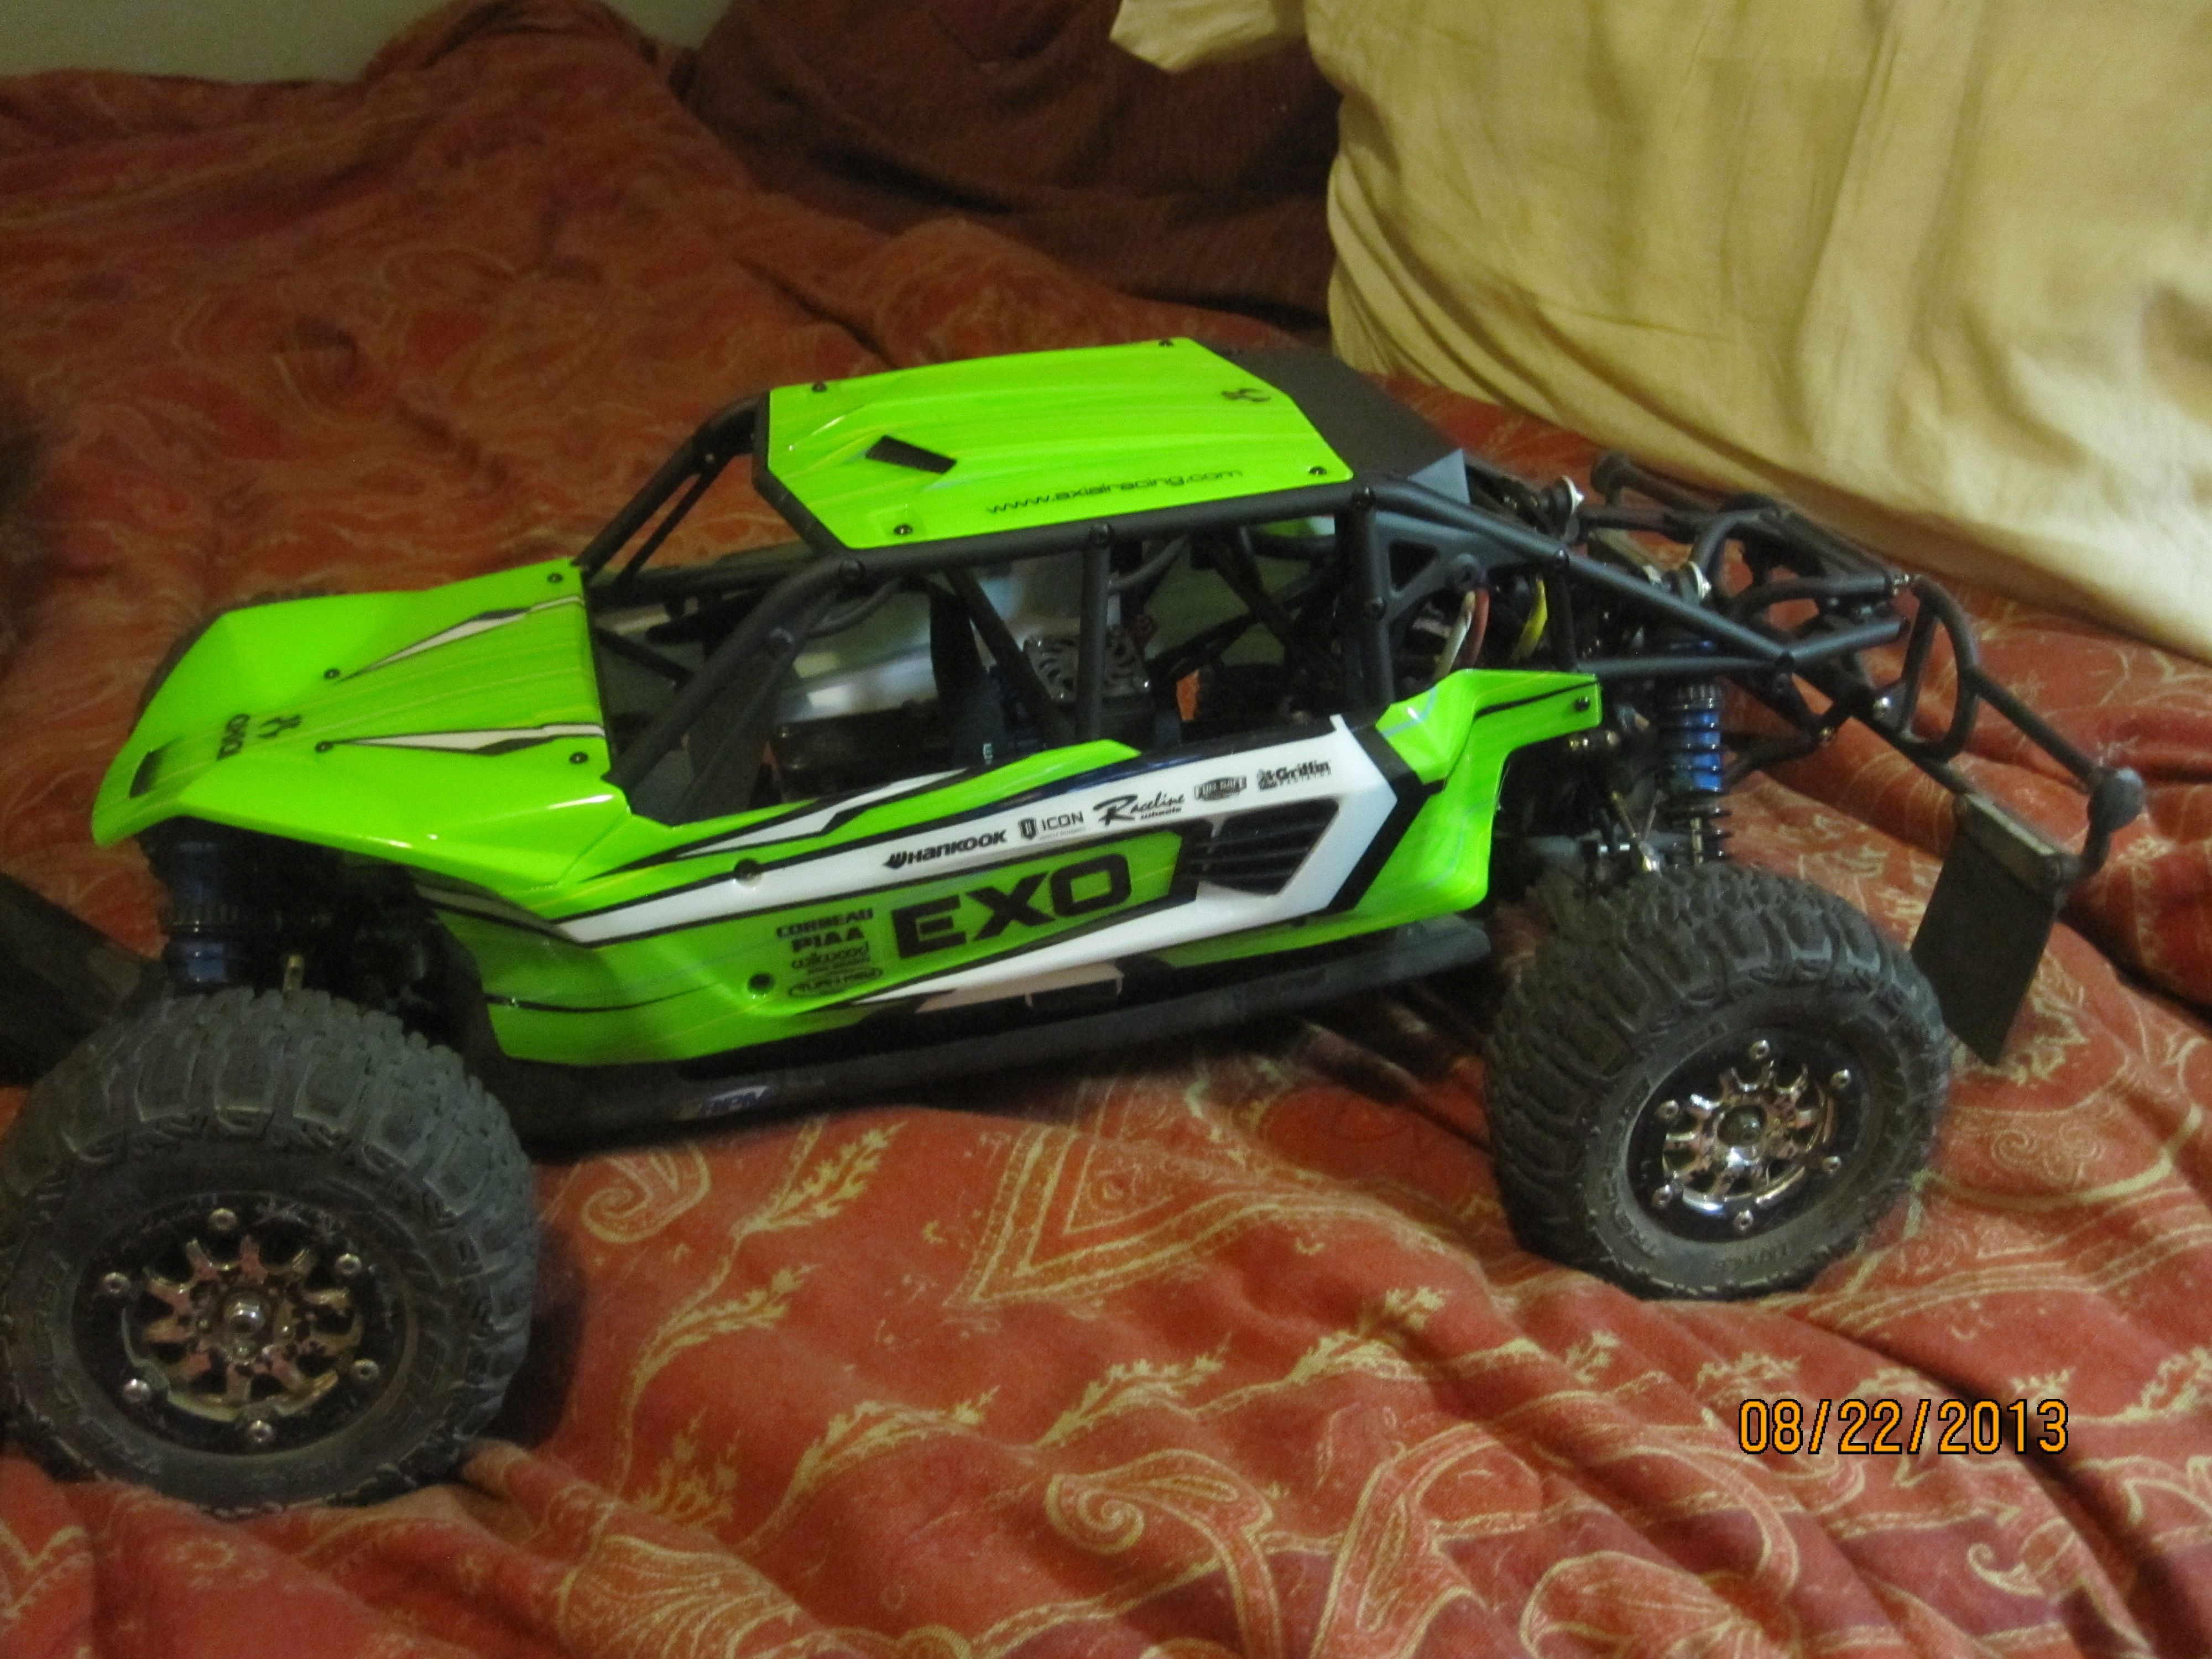 medium resolution of i wanted a roll cage so i got a body from an entirely different rc and modified it to fit i think it came out pretty cool lookin lol